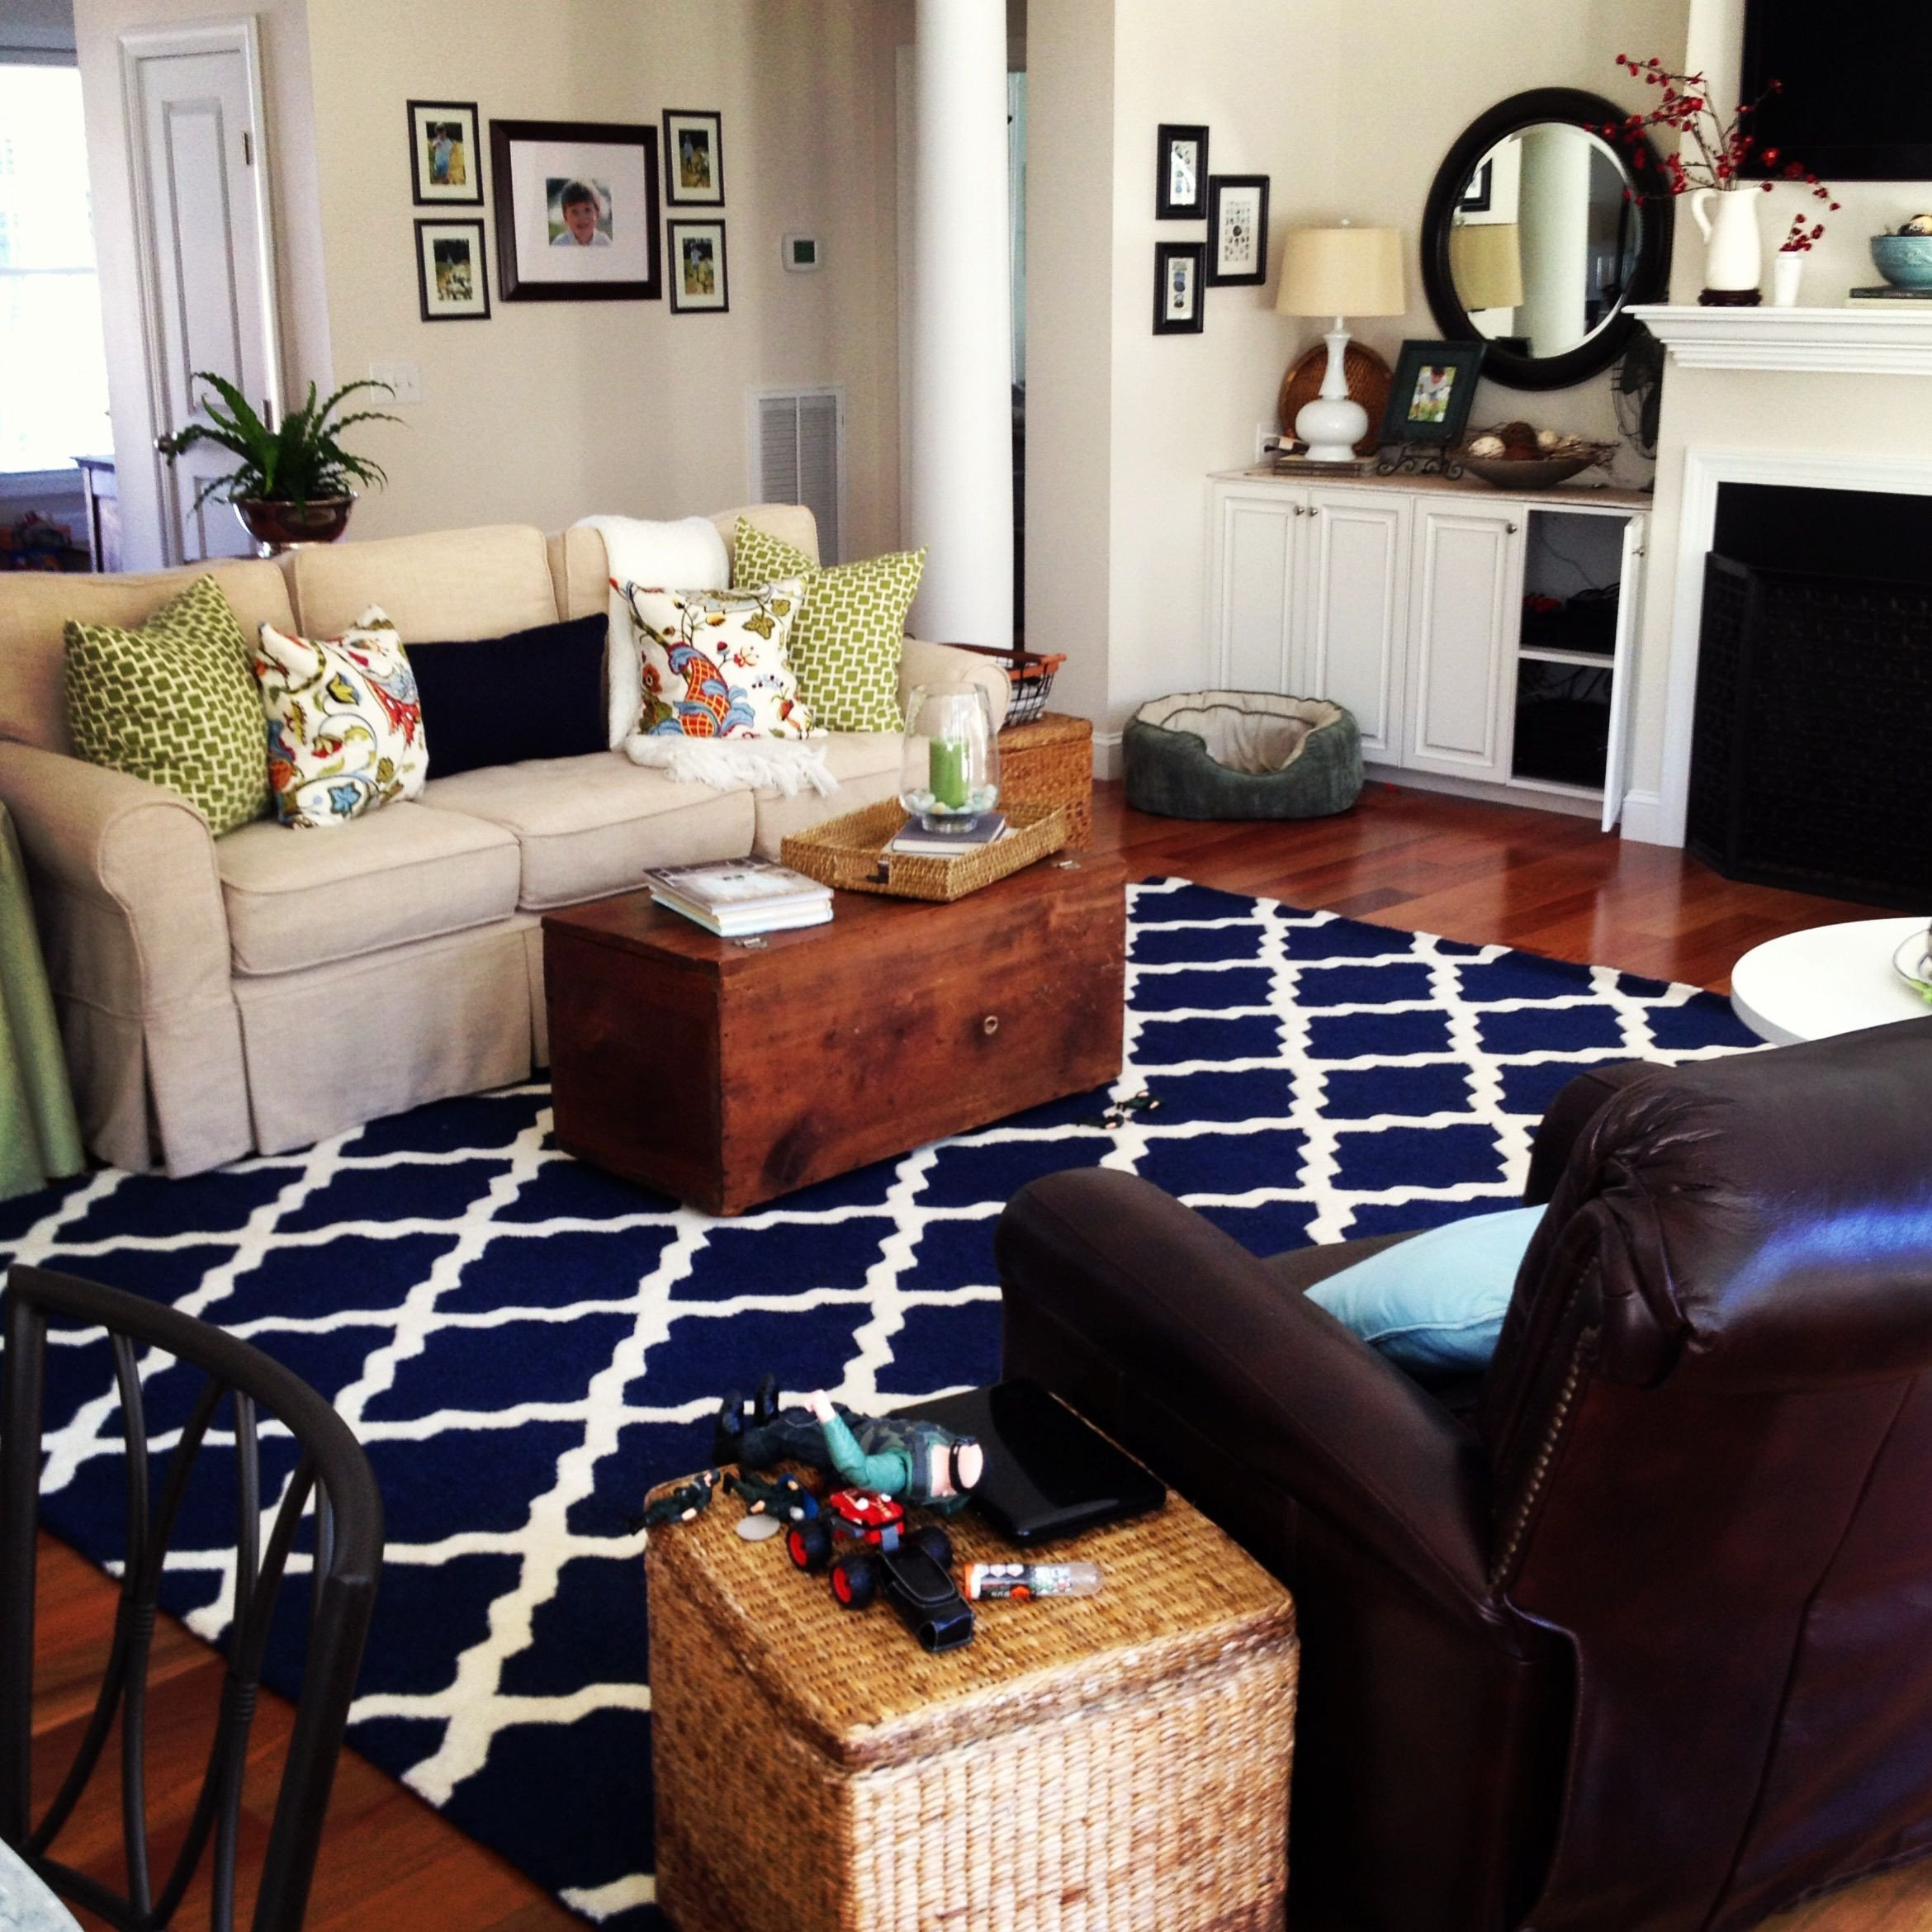 Rug for Living Room Ideas Unique Best 25 Living Room Rugs Ideas On Pinterest